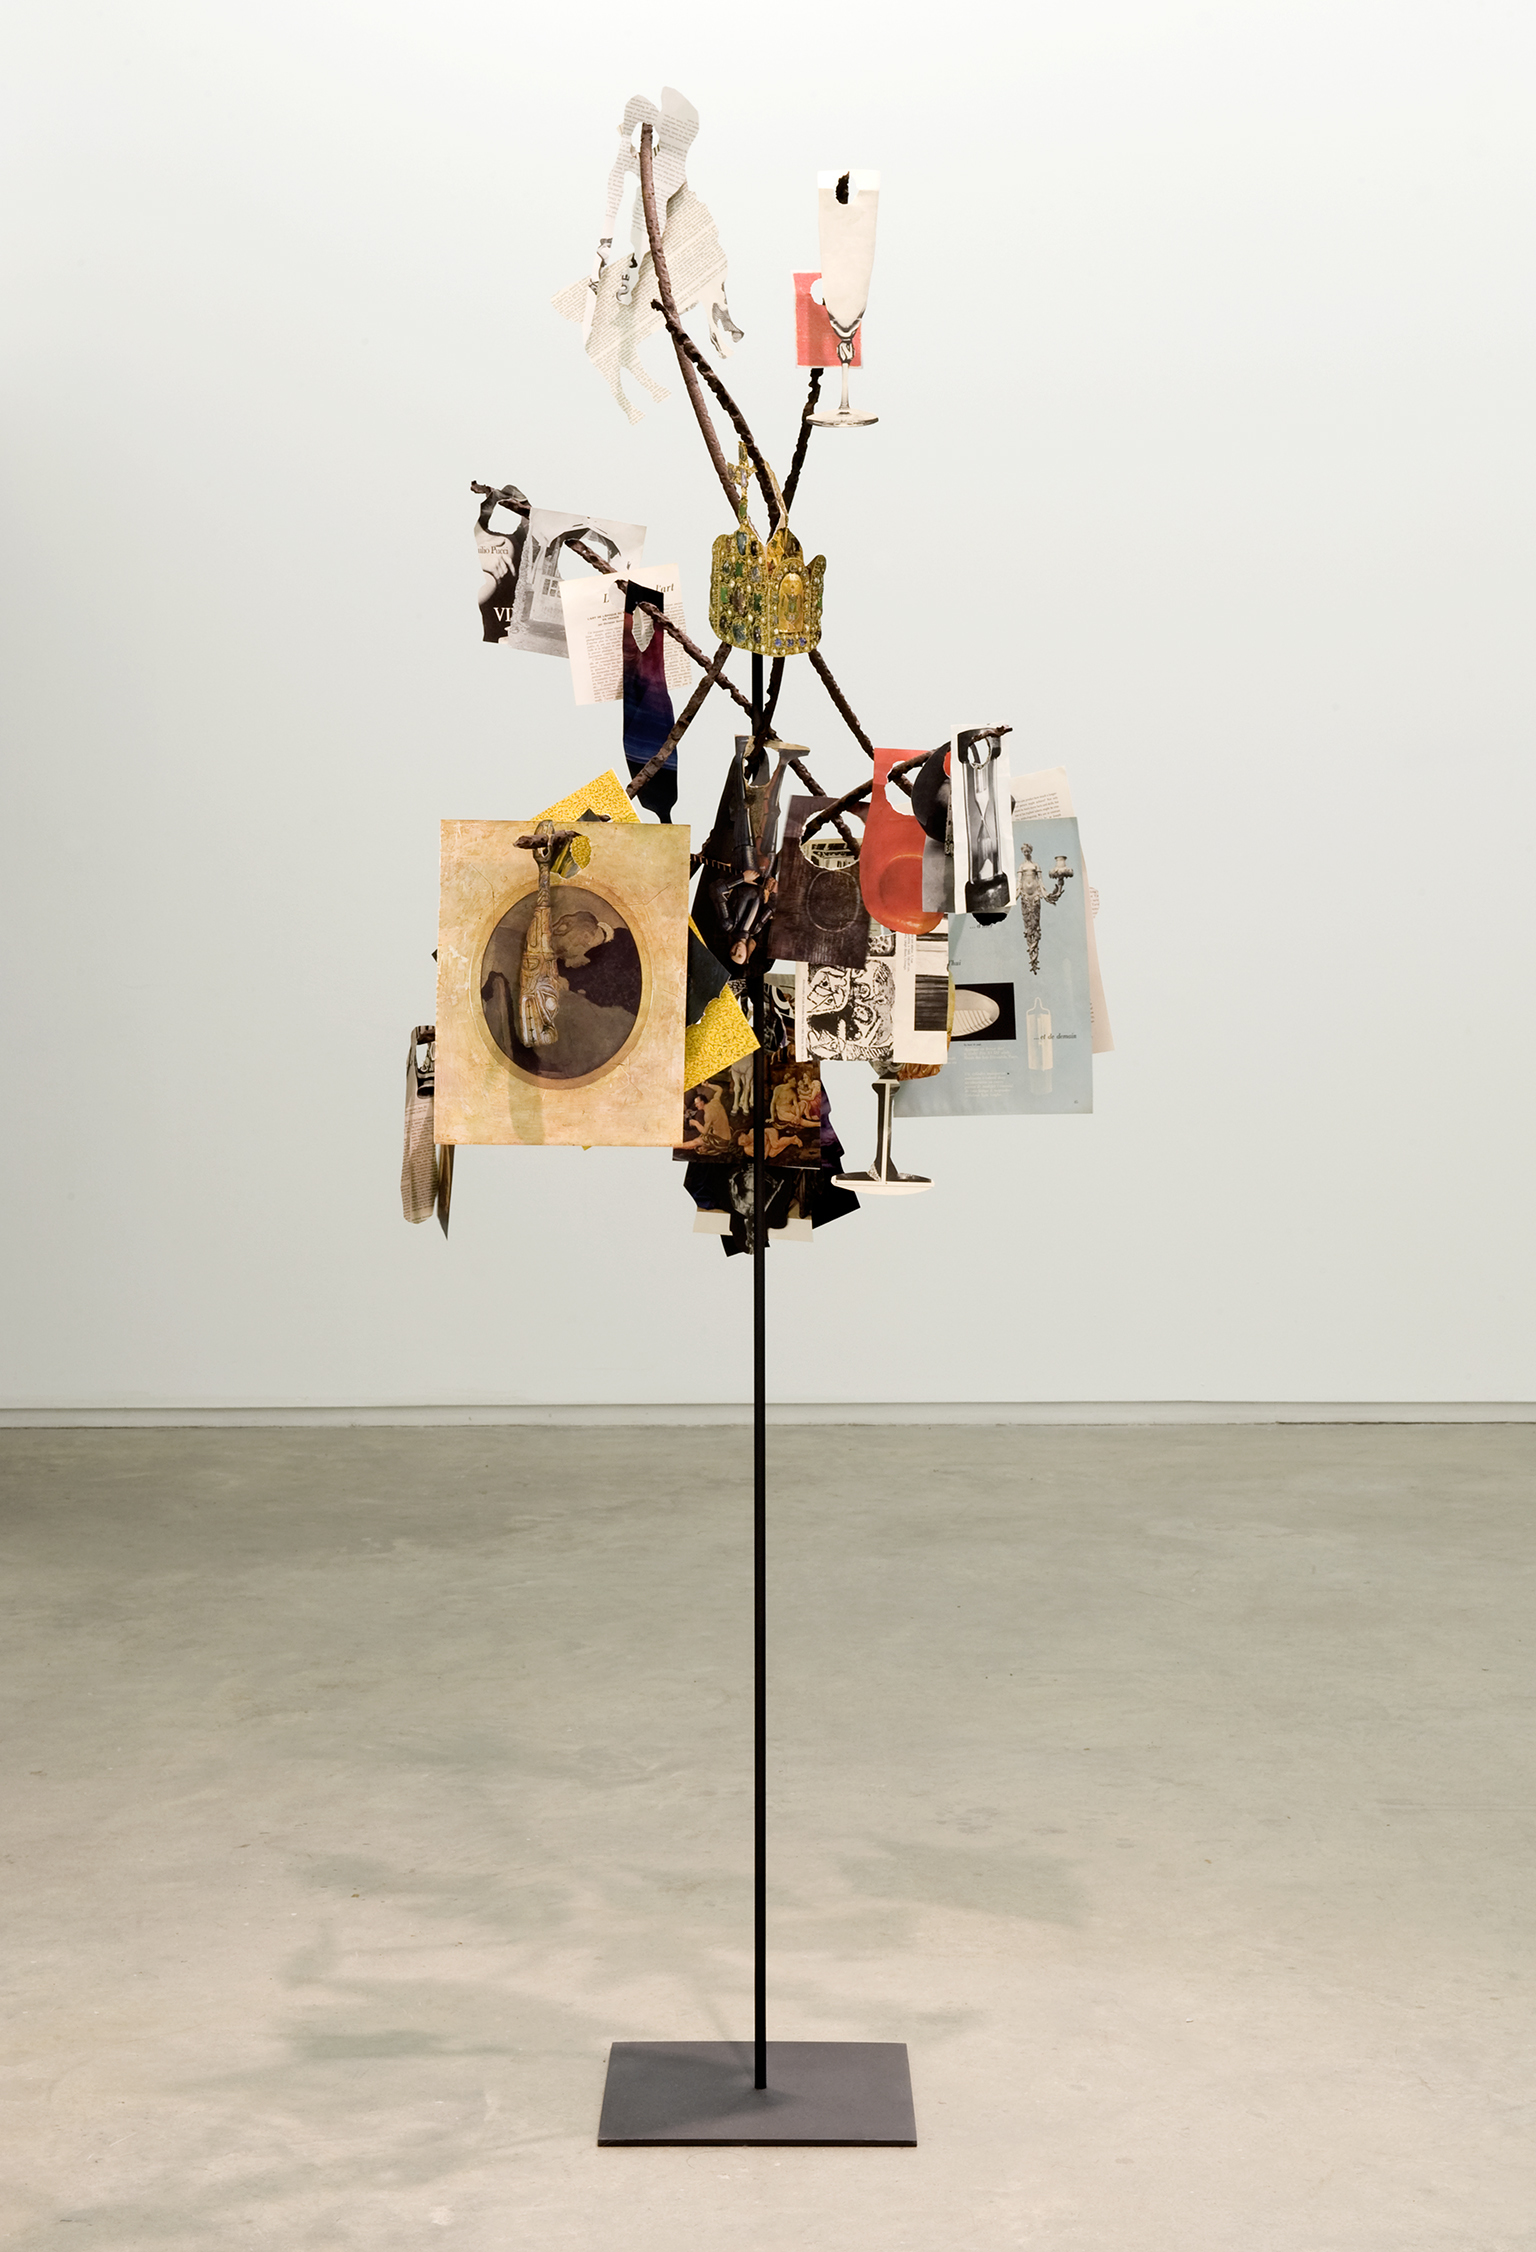 ​Geoffrey Farmer, Metal Will Stand Tall (A Single Image Is Not A Splendor), 2011, found metal, book cut outs, metal box, musical instruments, dimensions variable by